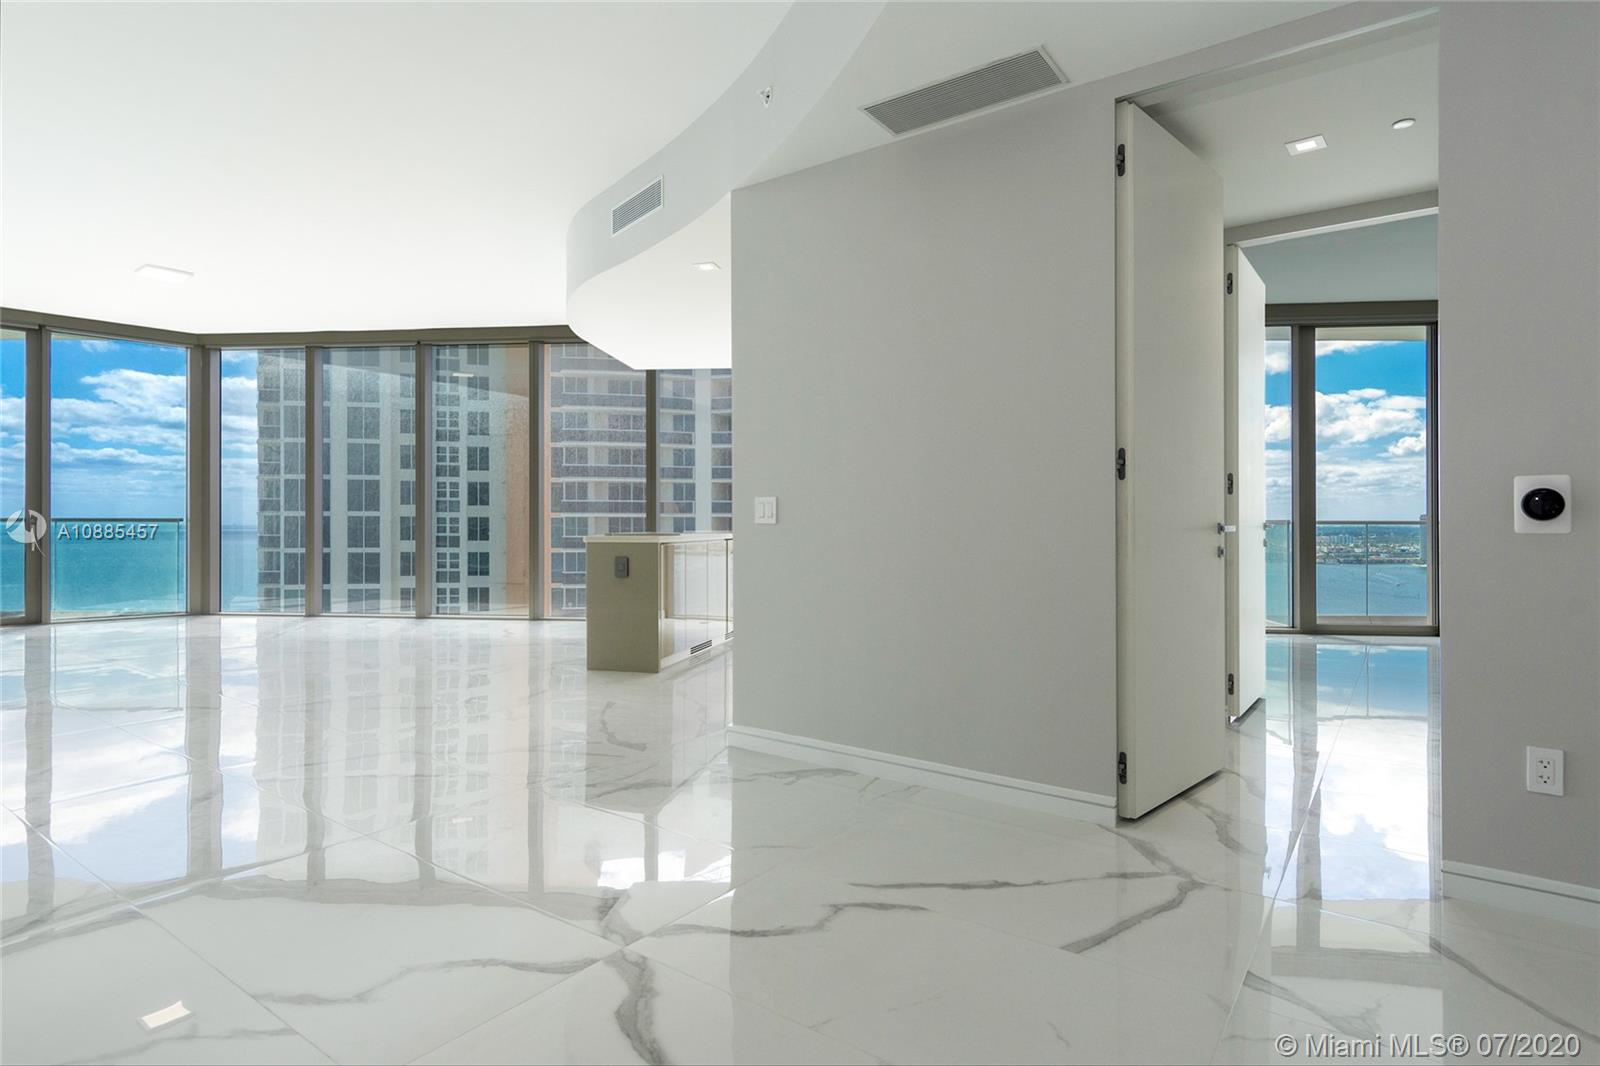 18975 Collins Ave #2304 Property Photo